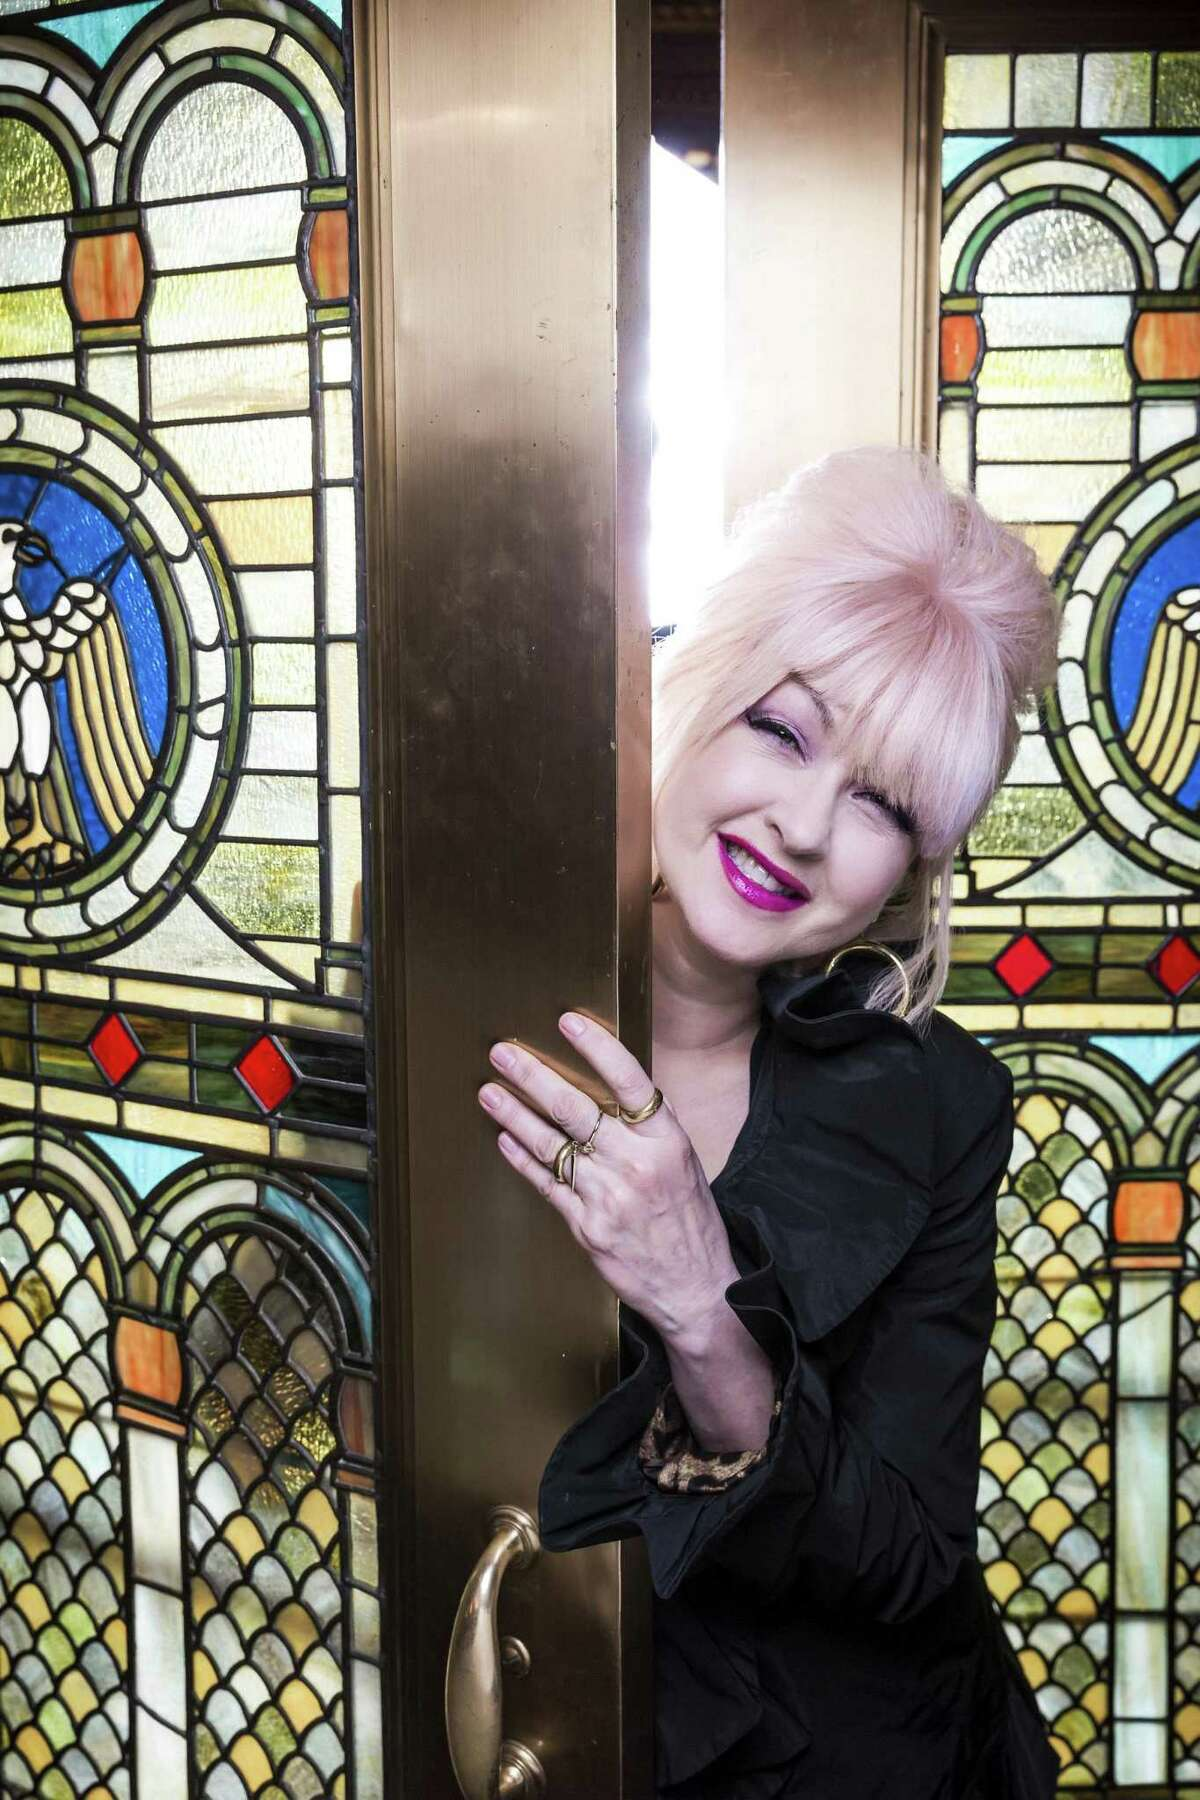 """Pop trailblazer Cyndi Lauper at the Al Hirschfeld Theater in New York, Feb. 27, 2013. Lauper has composed the music for the upcoming Broadway version of """"Kinky Boots,"""" adapted from the 2005 movie -- a first for her. (Chad Batka/The New York Times) -- PHOTO MOVED IN ADVANCE AND NOT FOR USE - ONLINE OR IN PRINT - BEFORE MARCH 17, 2013."""